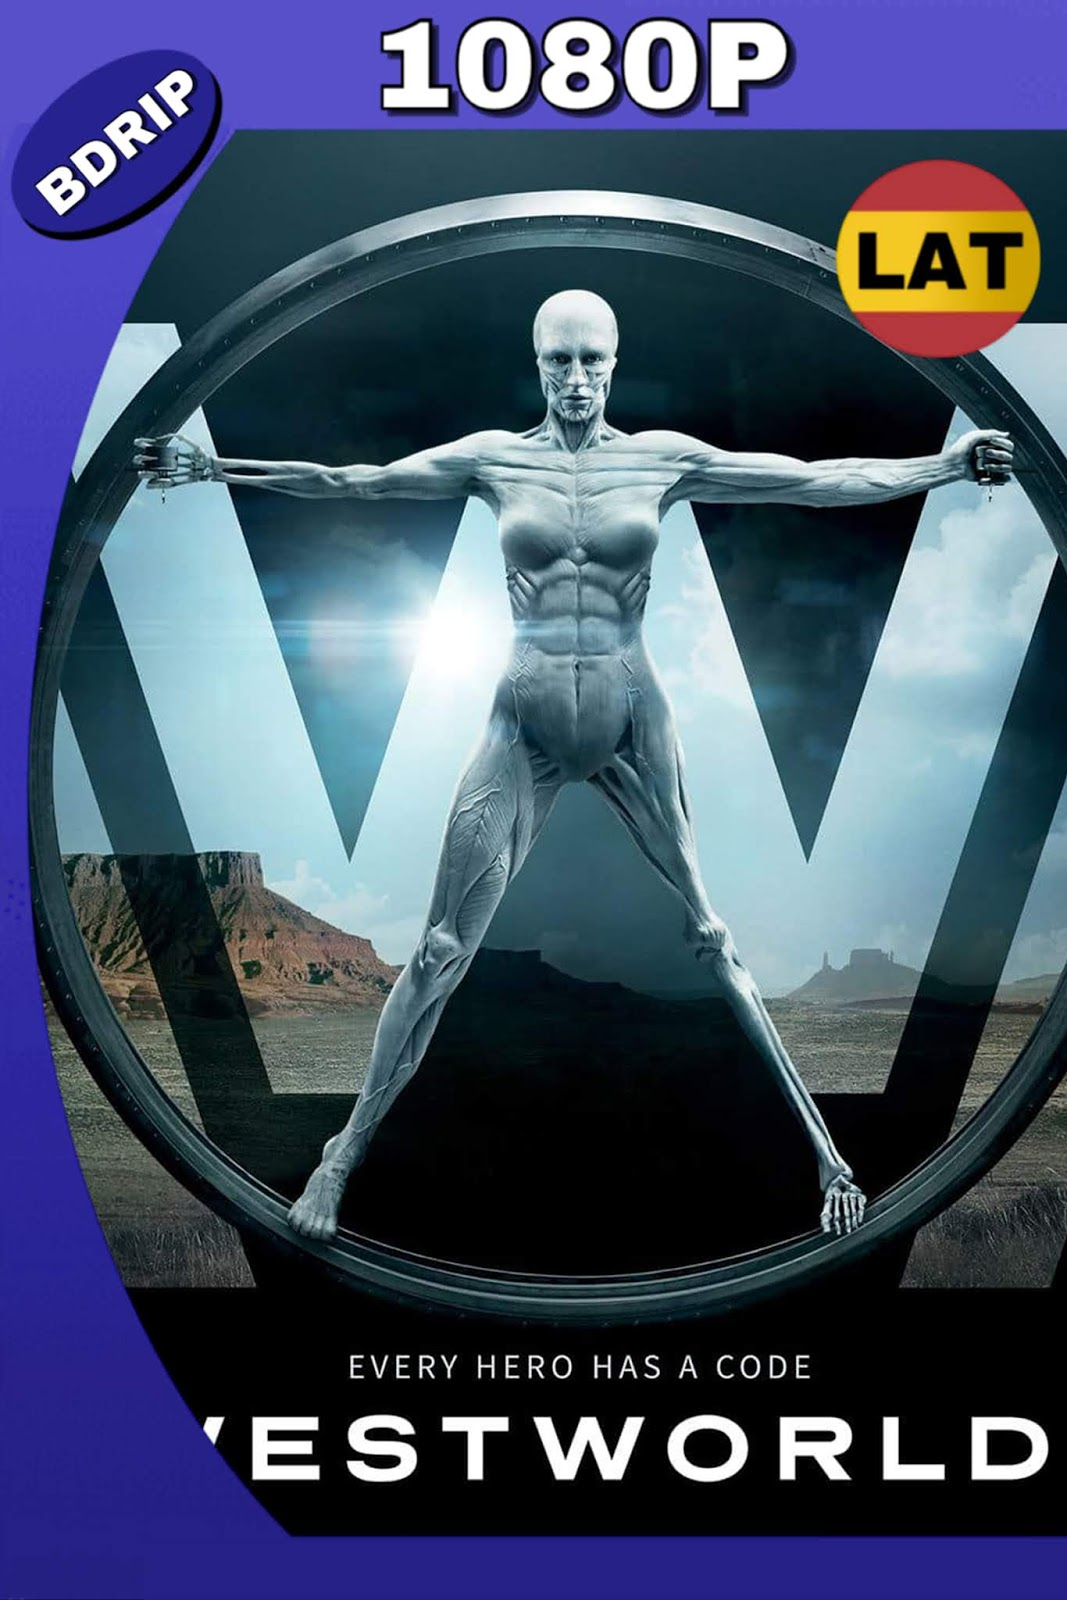 WESTWORLD 2016 TEMPORADA 1 HD BDRIP 1080P 53GB.mkv